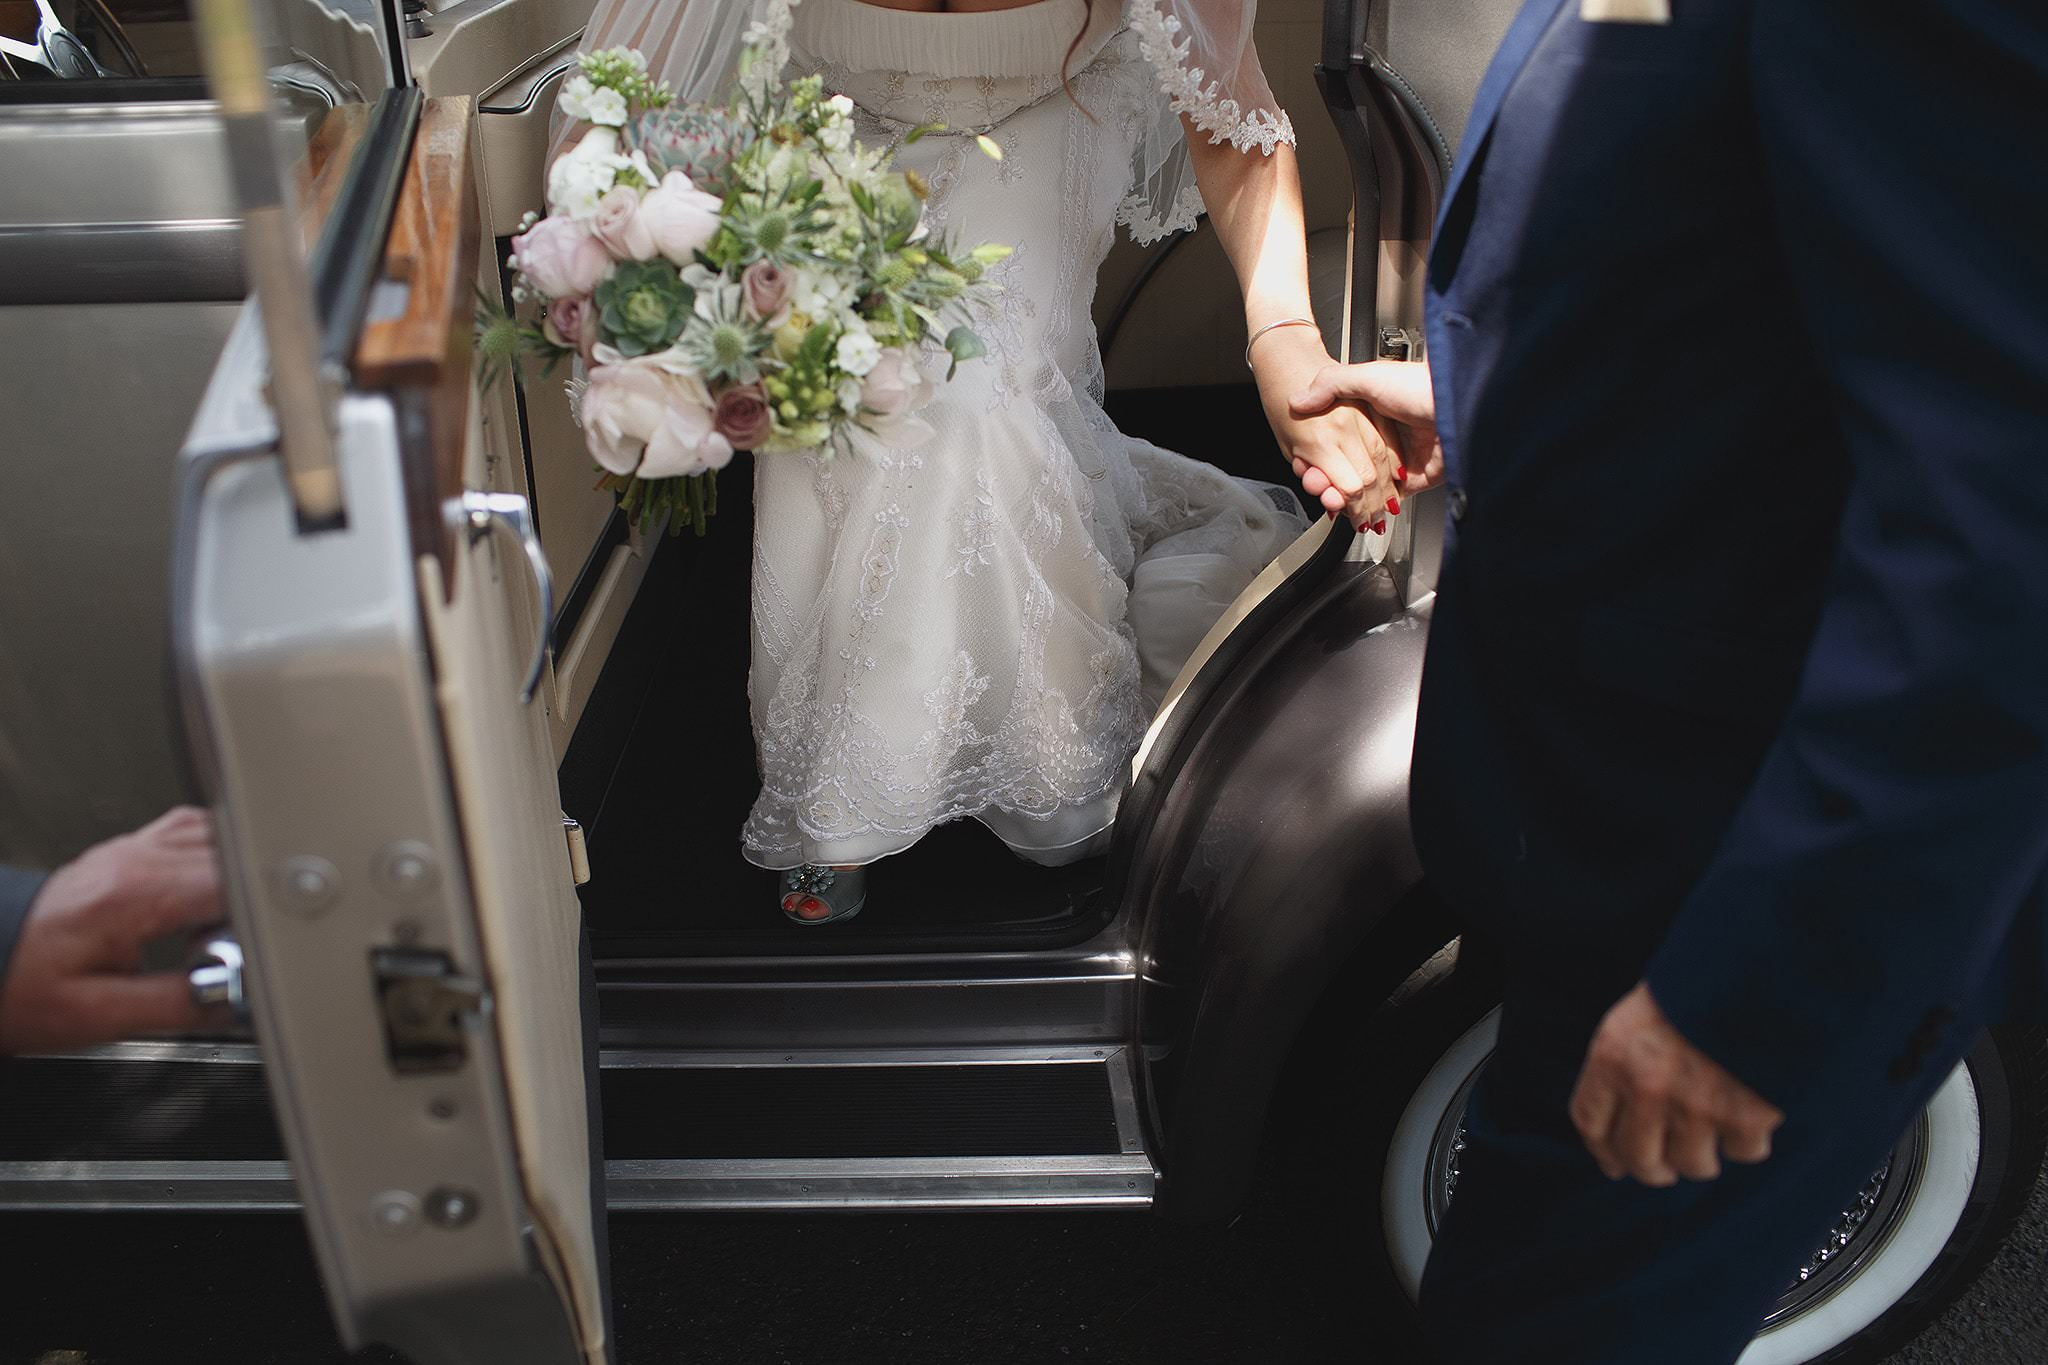 Creative picture of the bride arriving by Browsholme Hall Wedding Photographer Toni Darcy.